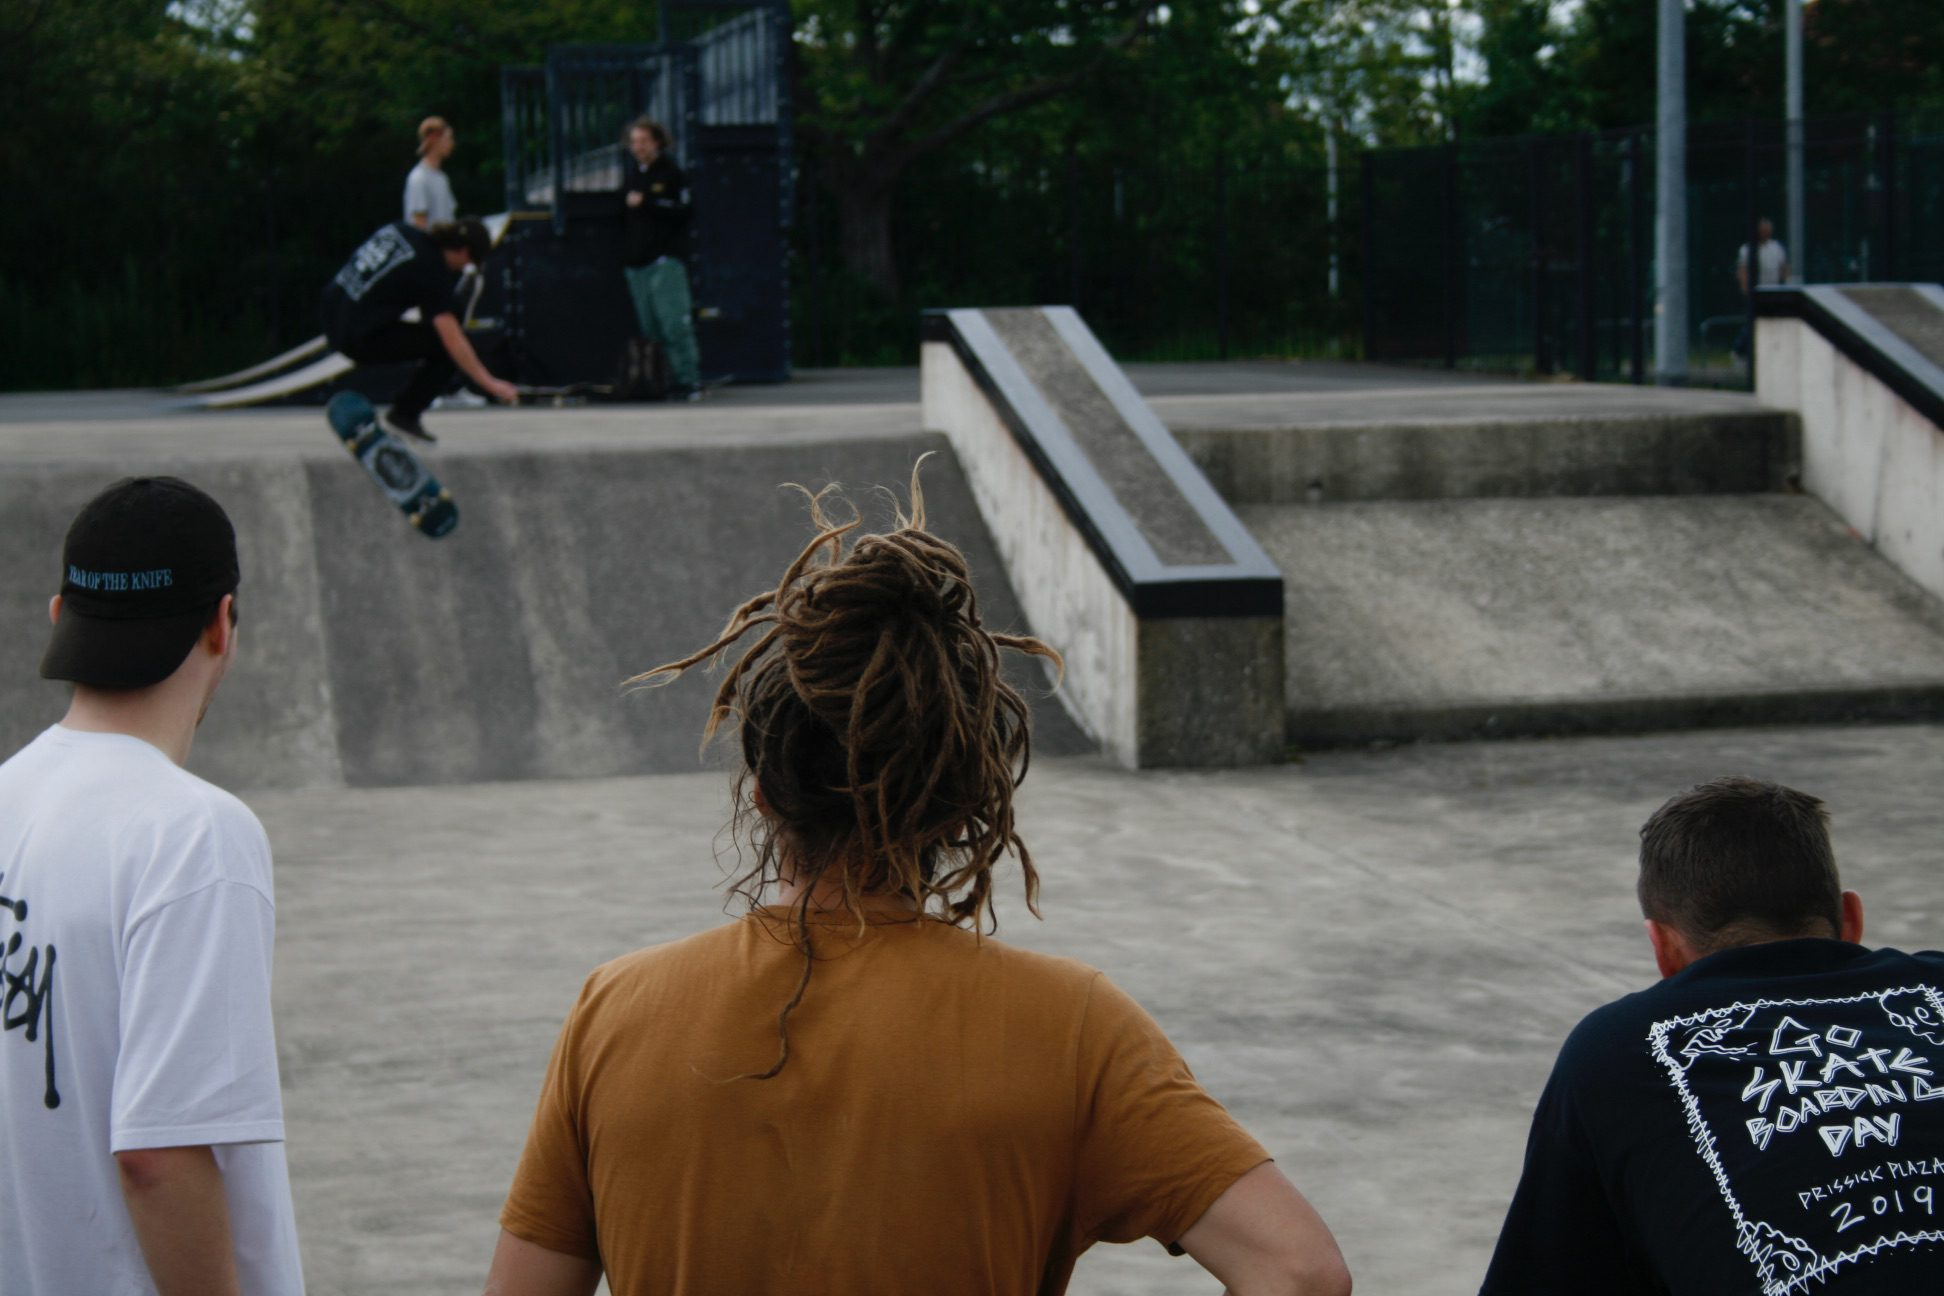 Go Skateboarding Day 2019 Skate Jam With Think Culture @ Prissick Plaza